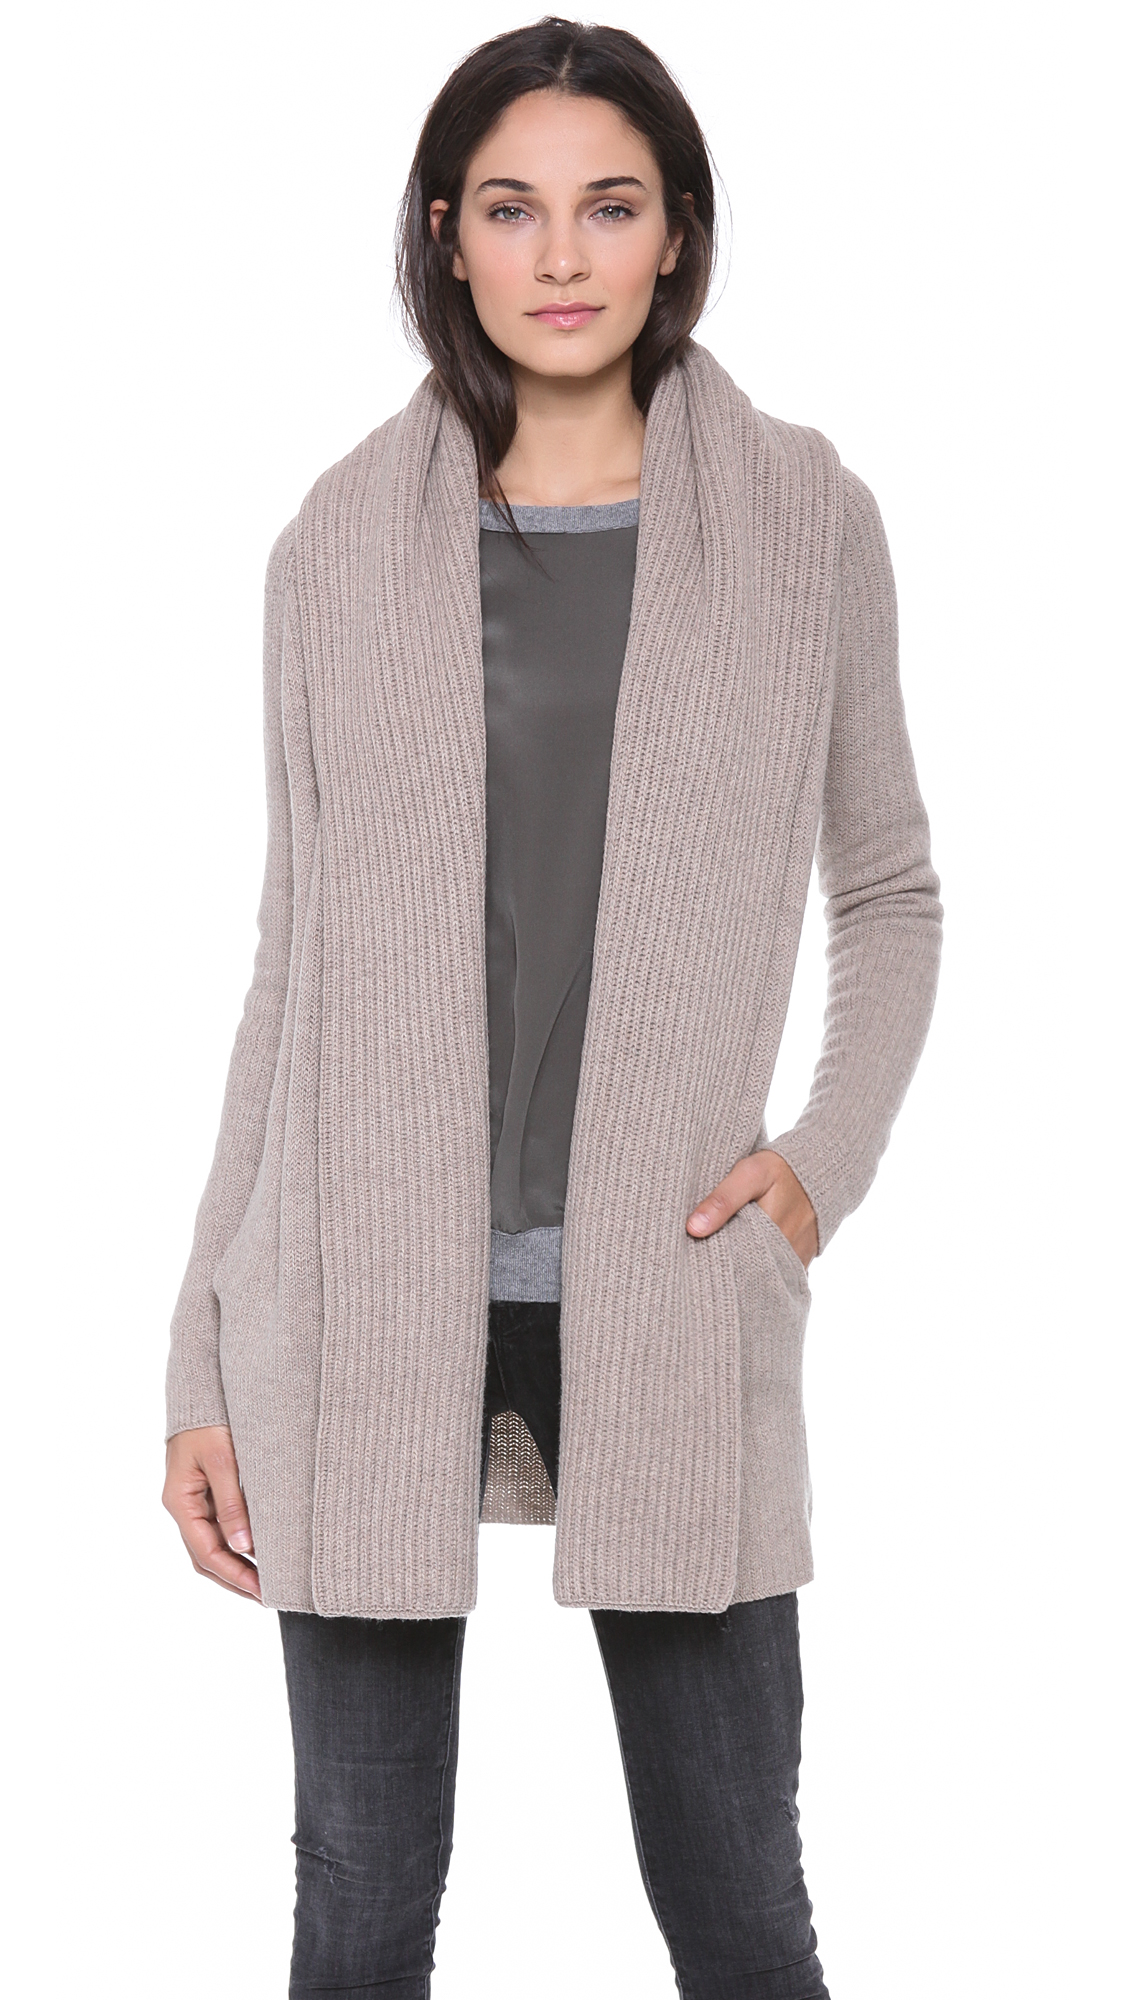 Vince Ribbed Shawl Cardigan in Gray (H.Oatmeal)